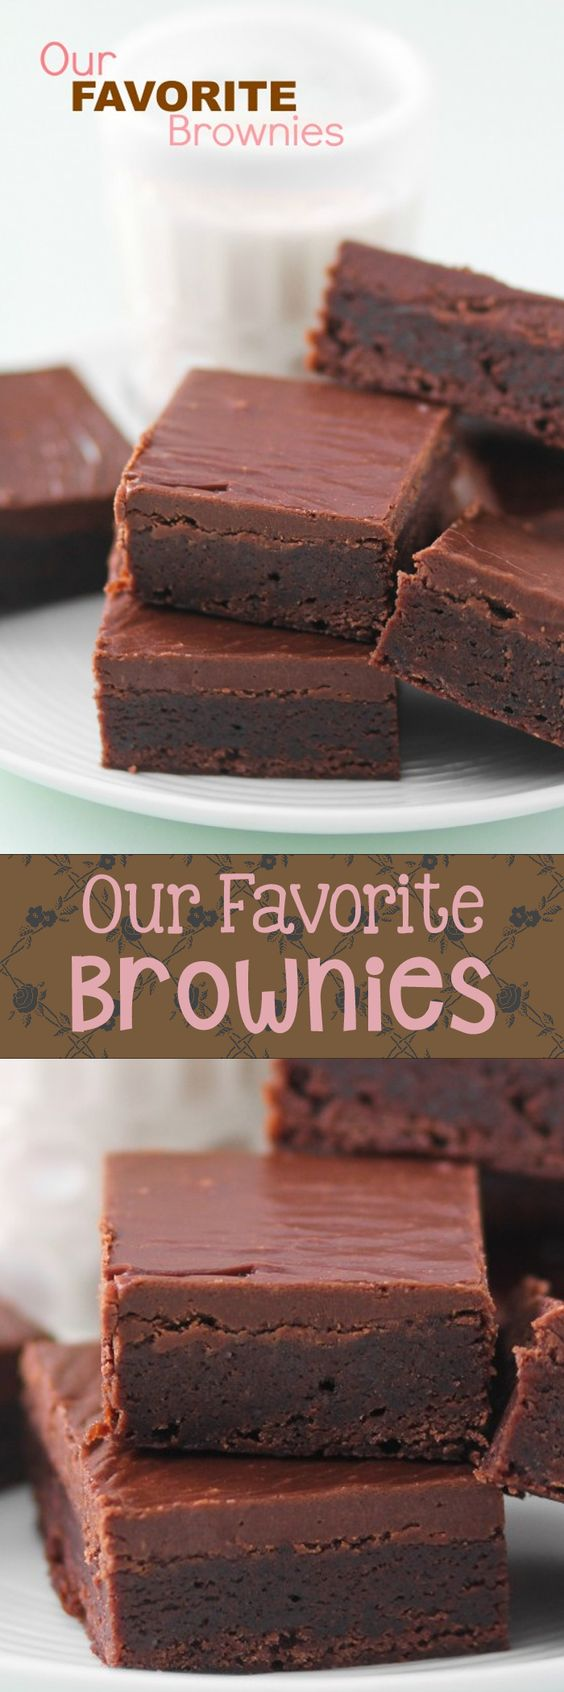 My Favorite Brownies | Recipe | Brownies, The Times and Frosted ...